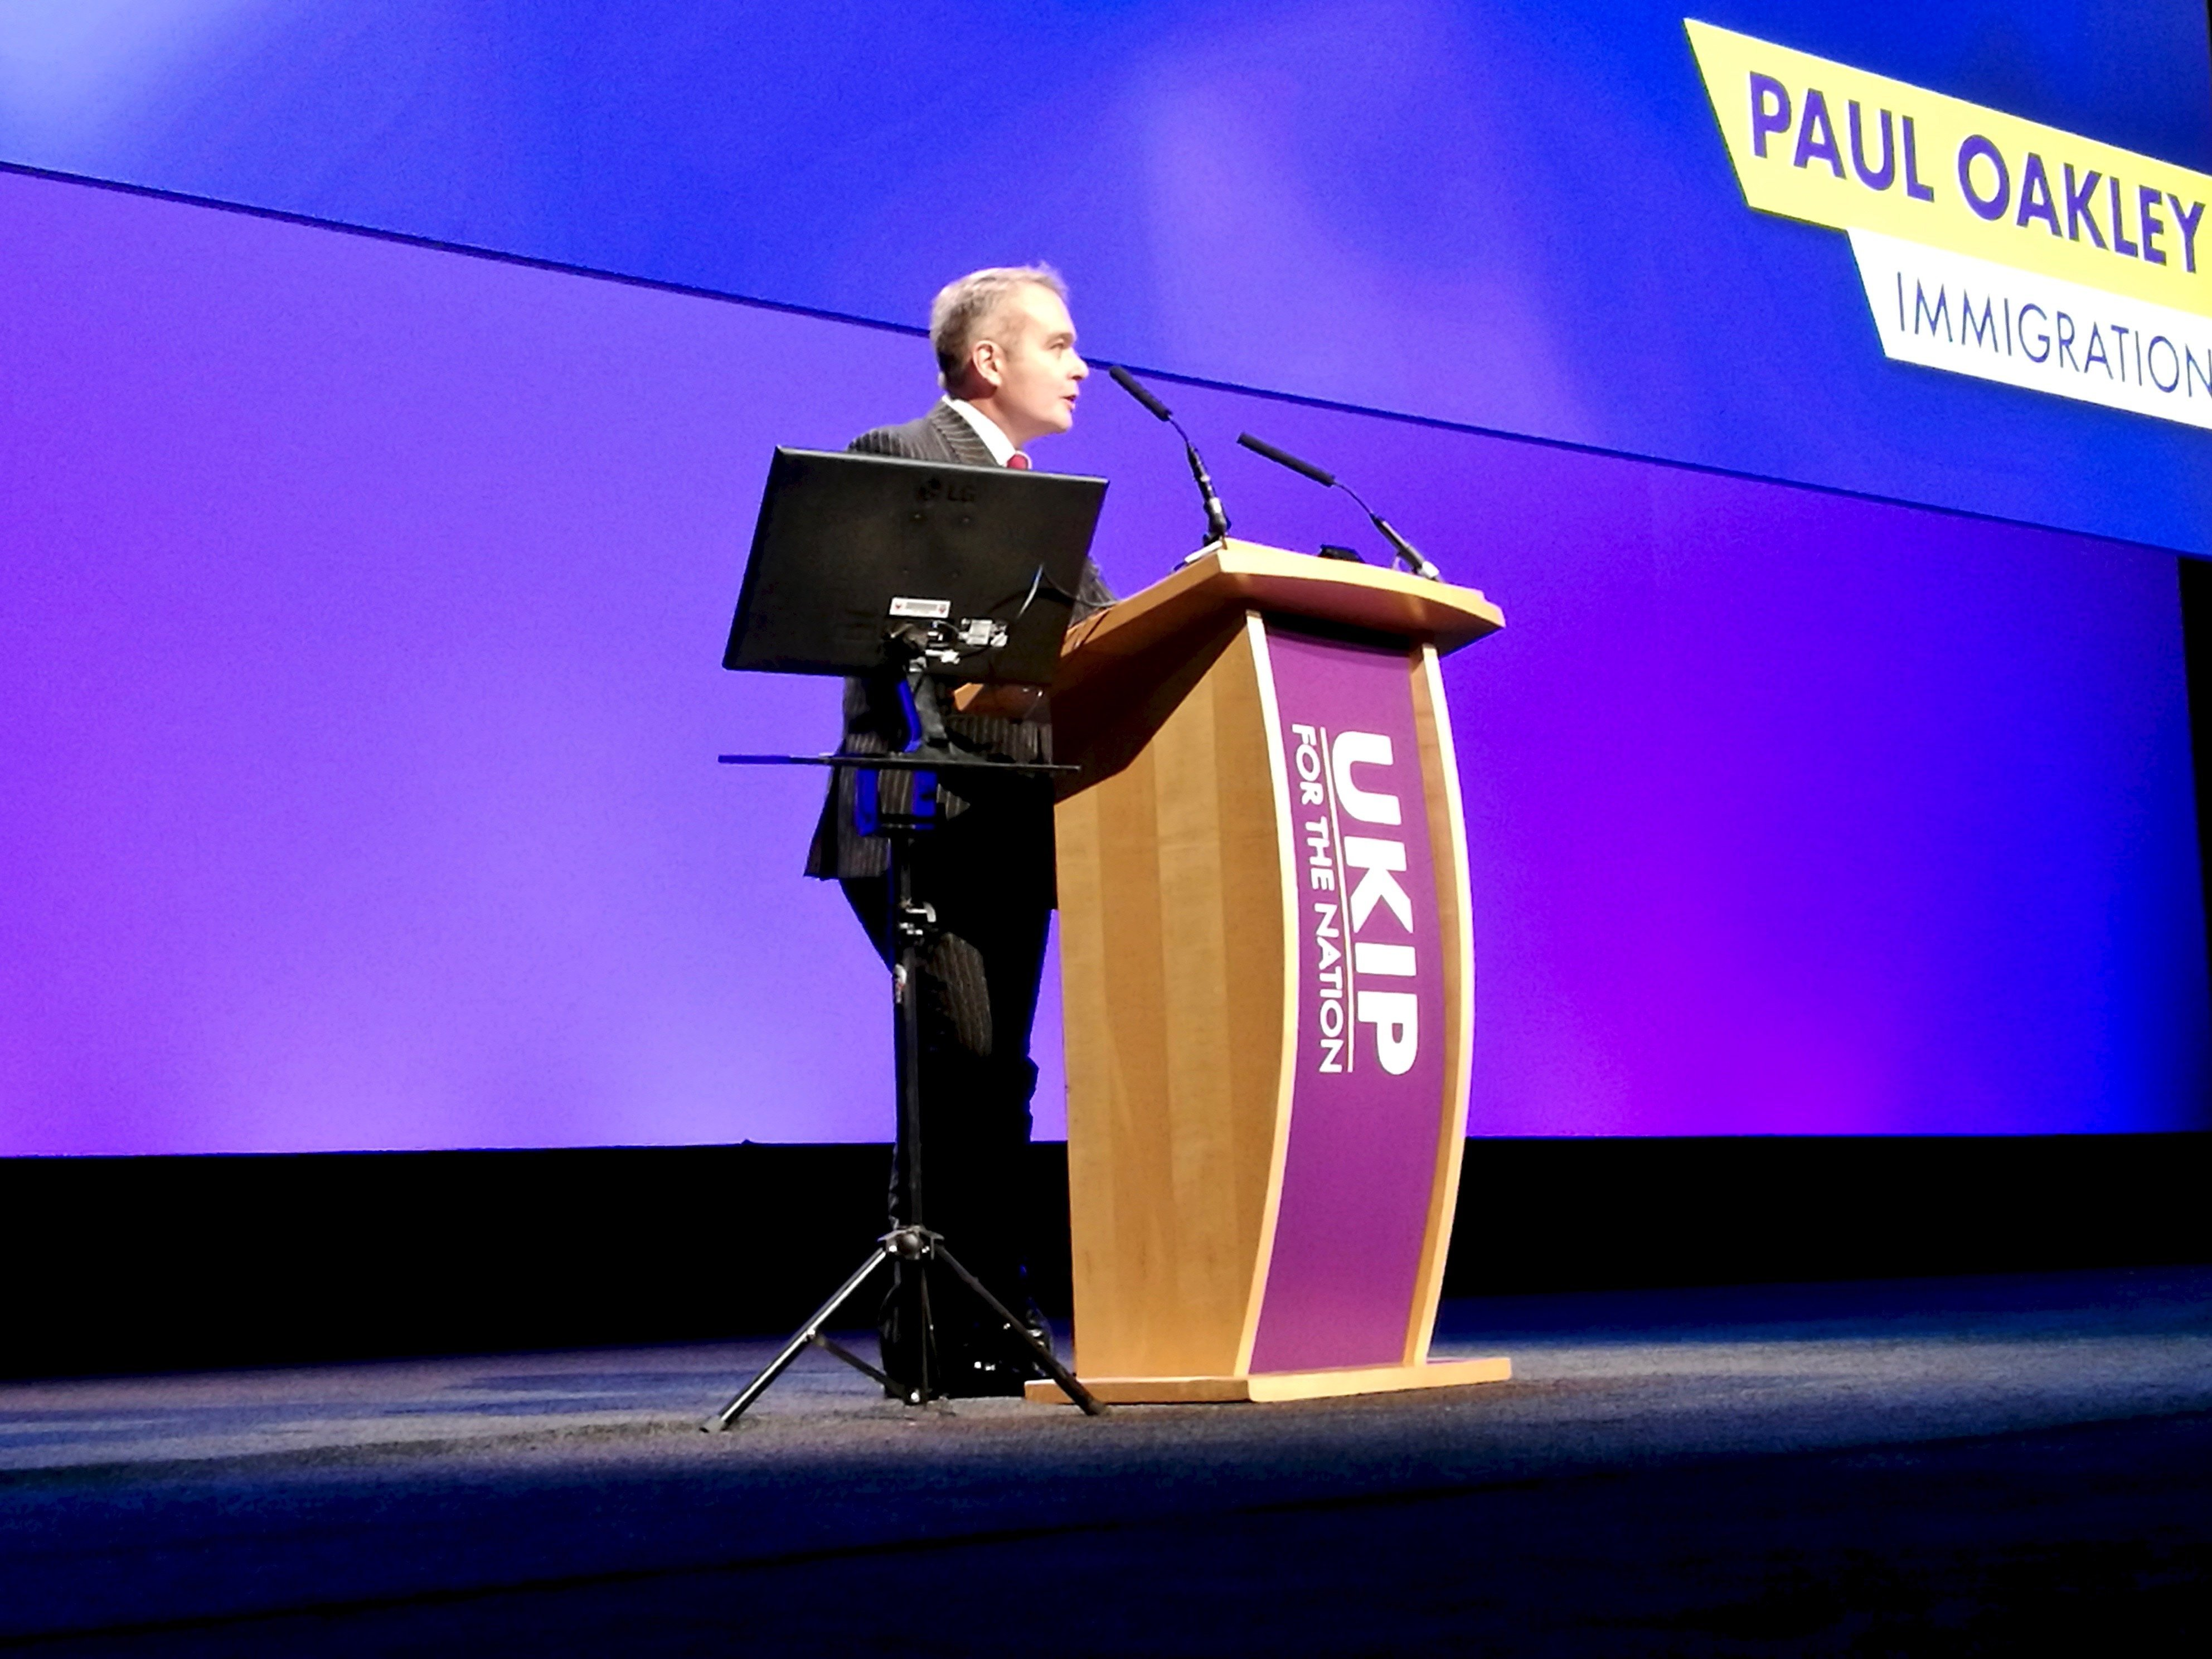 Paul Oakley Speaks about UKIP's new immigration policy at 2018 UKIP Conference in Birmingham